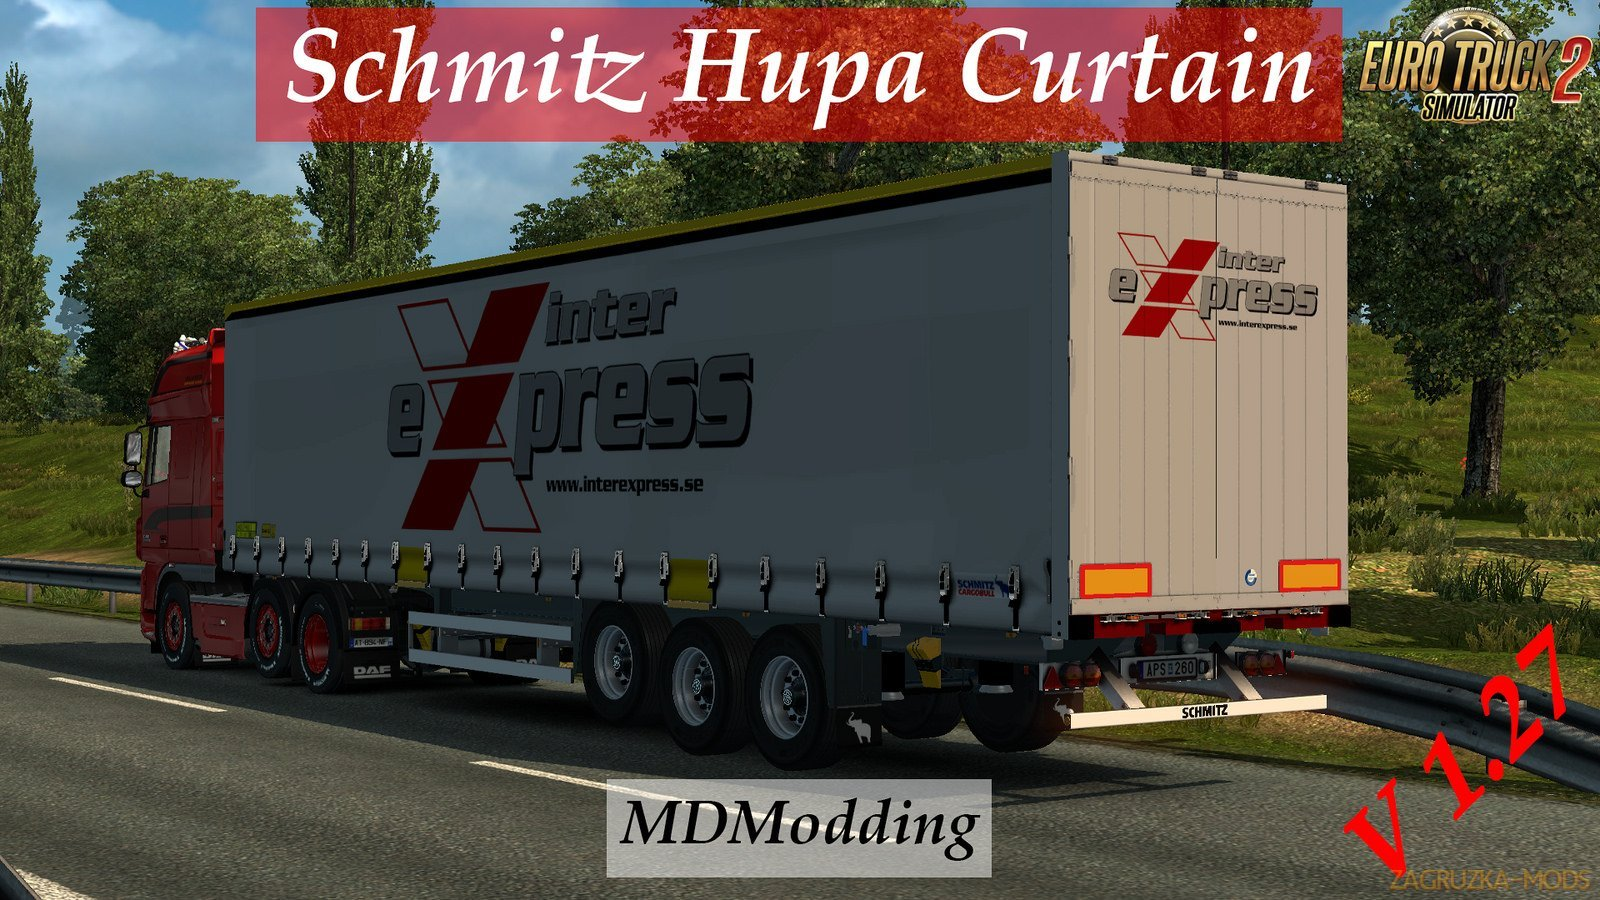 Schmitz Hupa Curtain for Ets2 [1.27.x]